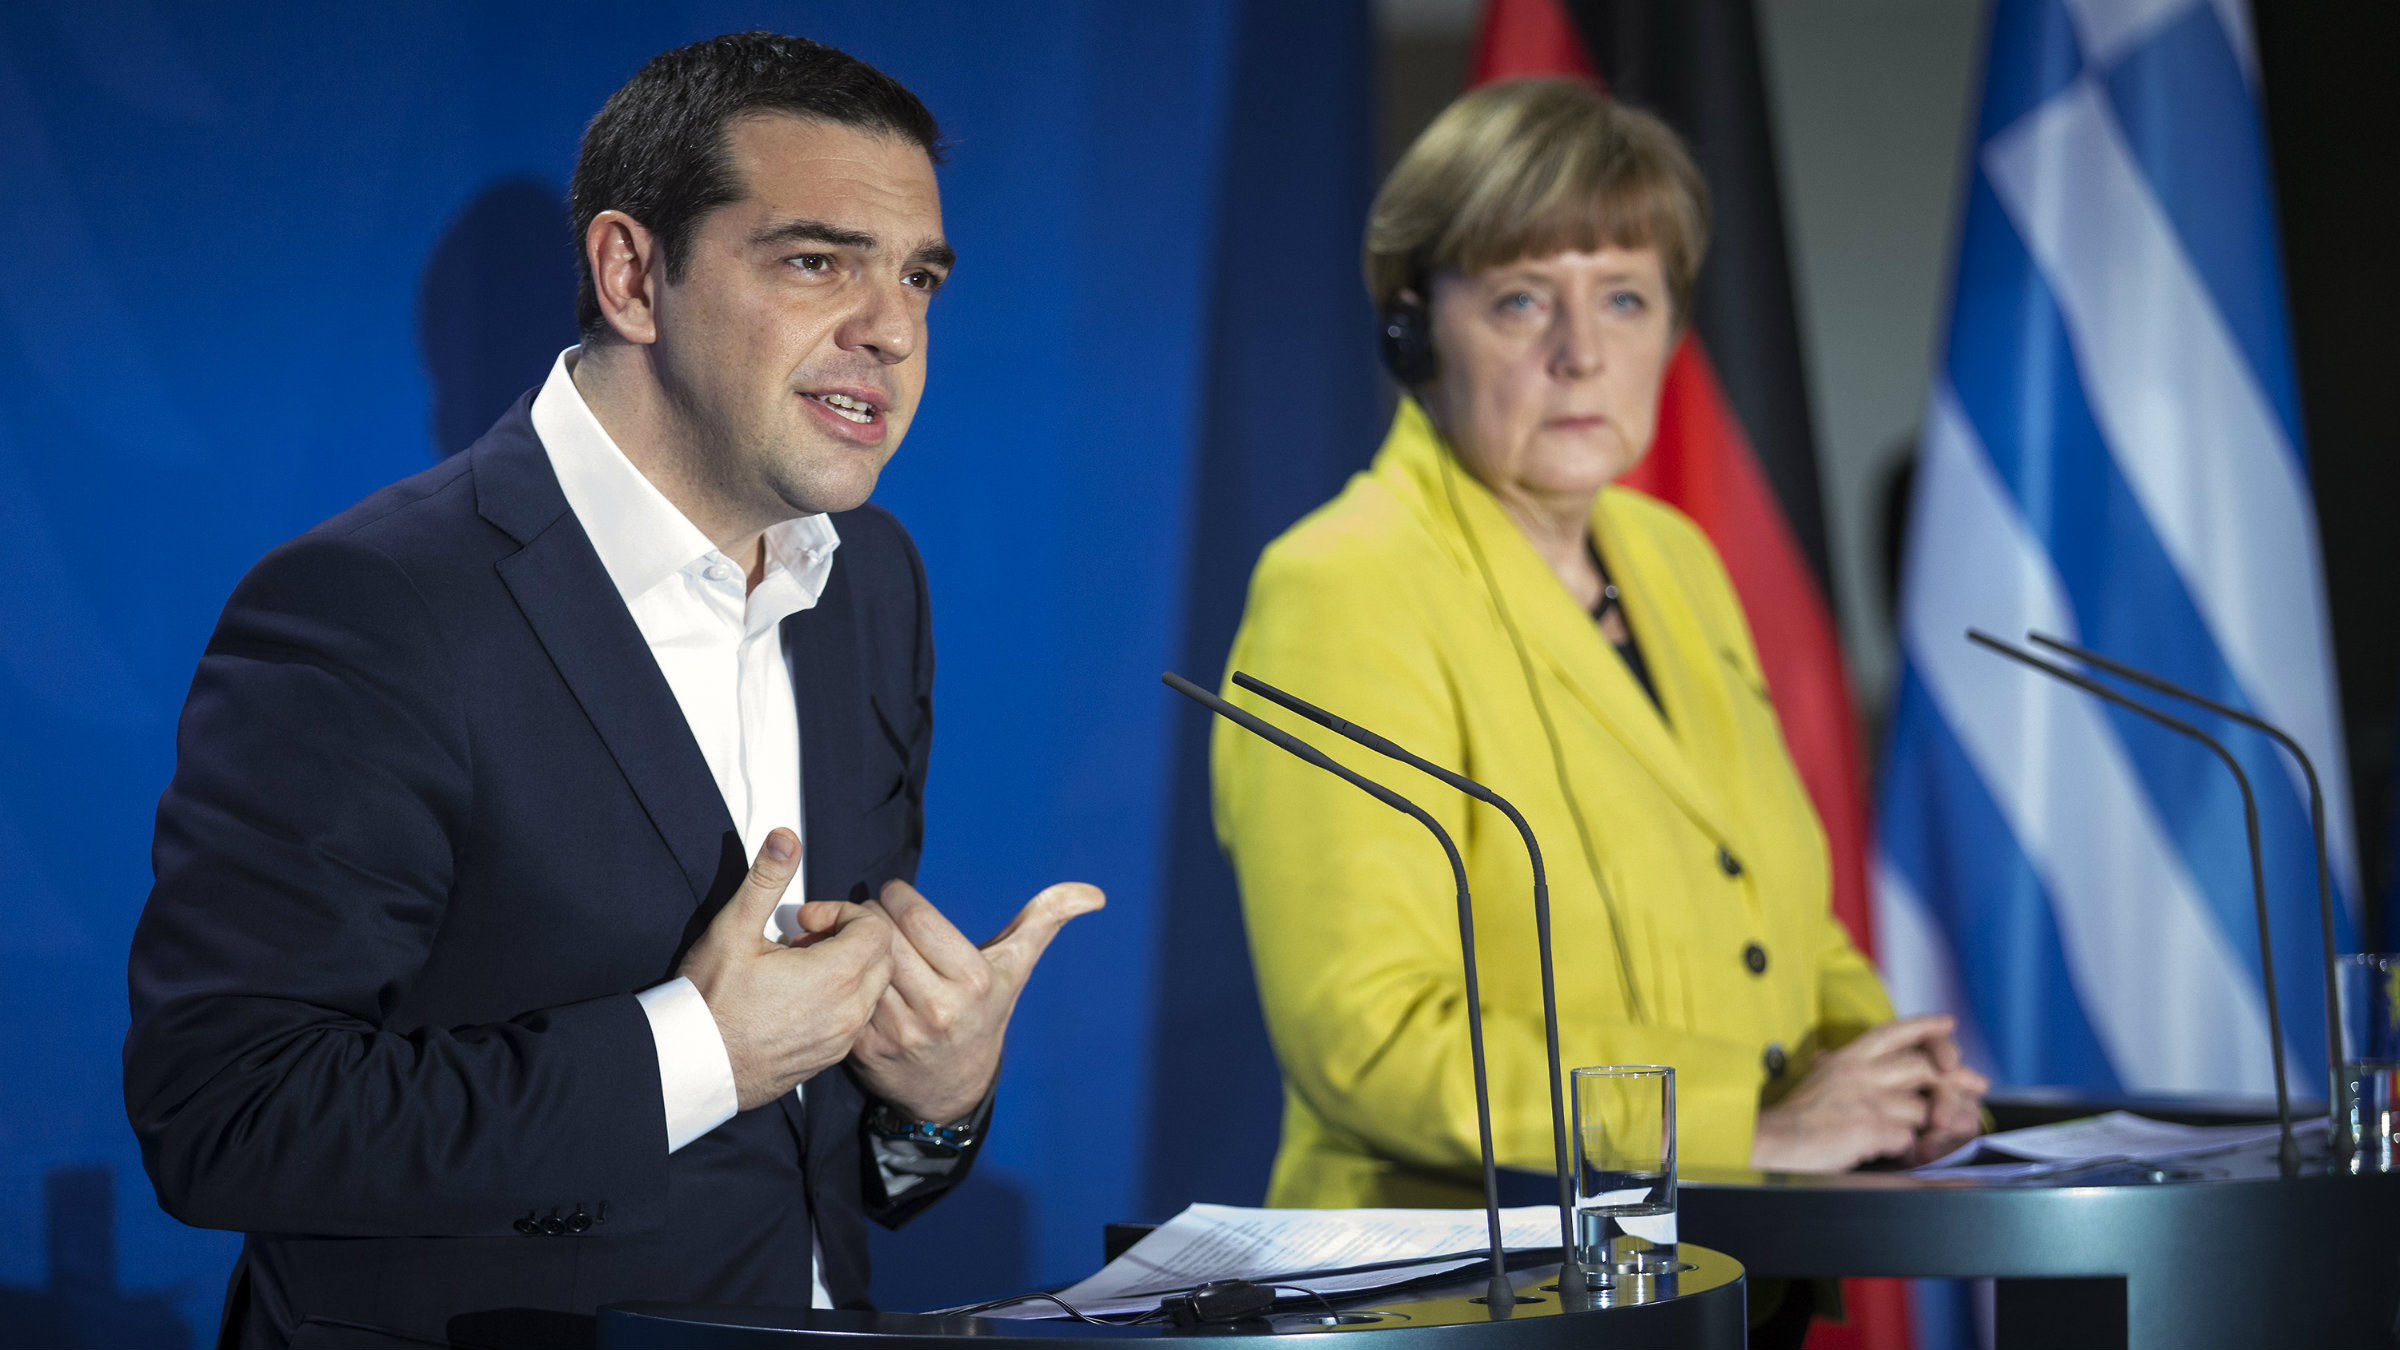 German Chancellor Angela Merkel and Greek Prime Minister Alexis Tsipras address a news conference following talks at the Chancellery in Berlin March 23, 2015. Germany sees all partners in Europe as its equals despite having the largest economy and wants good relations with all of them including Greece, Merkel said on Monday after talks with Tsipras. REUTERS/Hannibal Hanschke